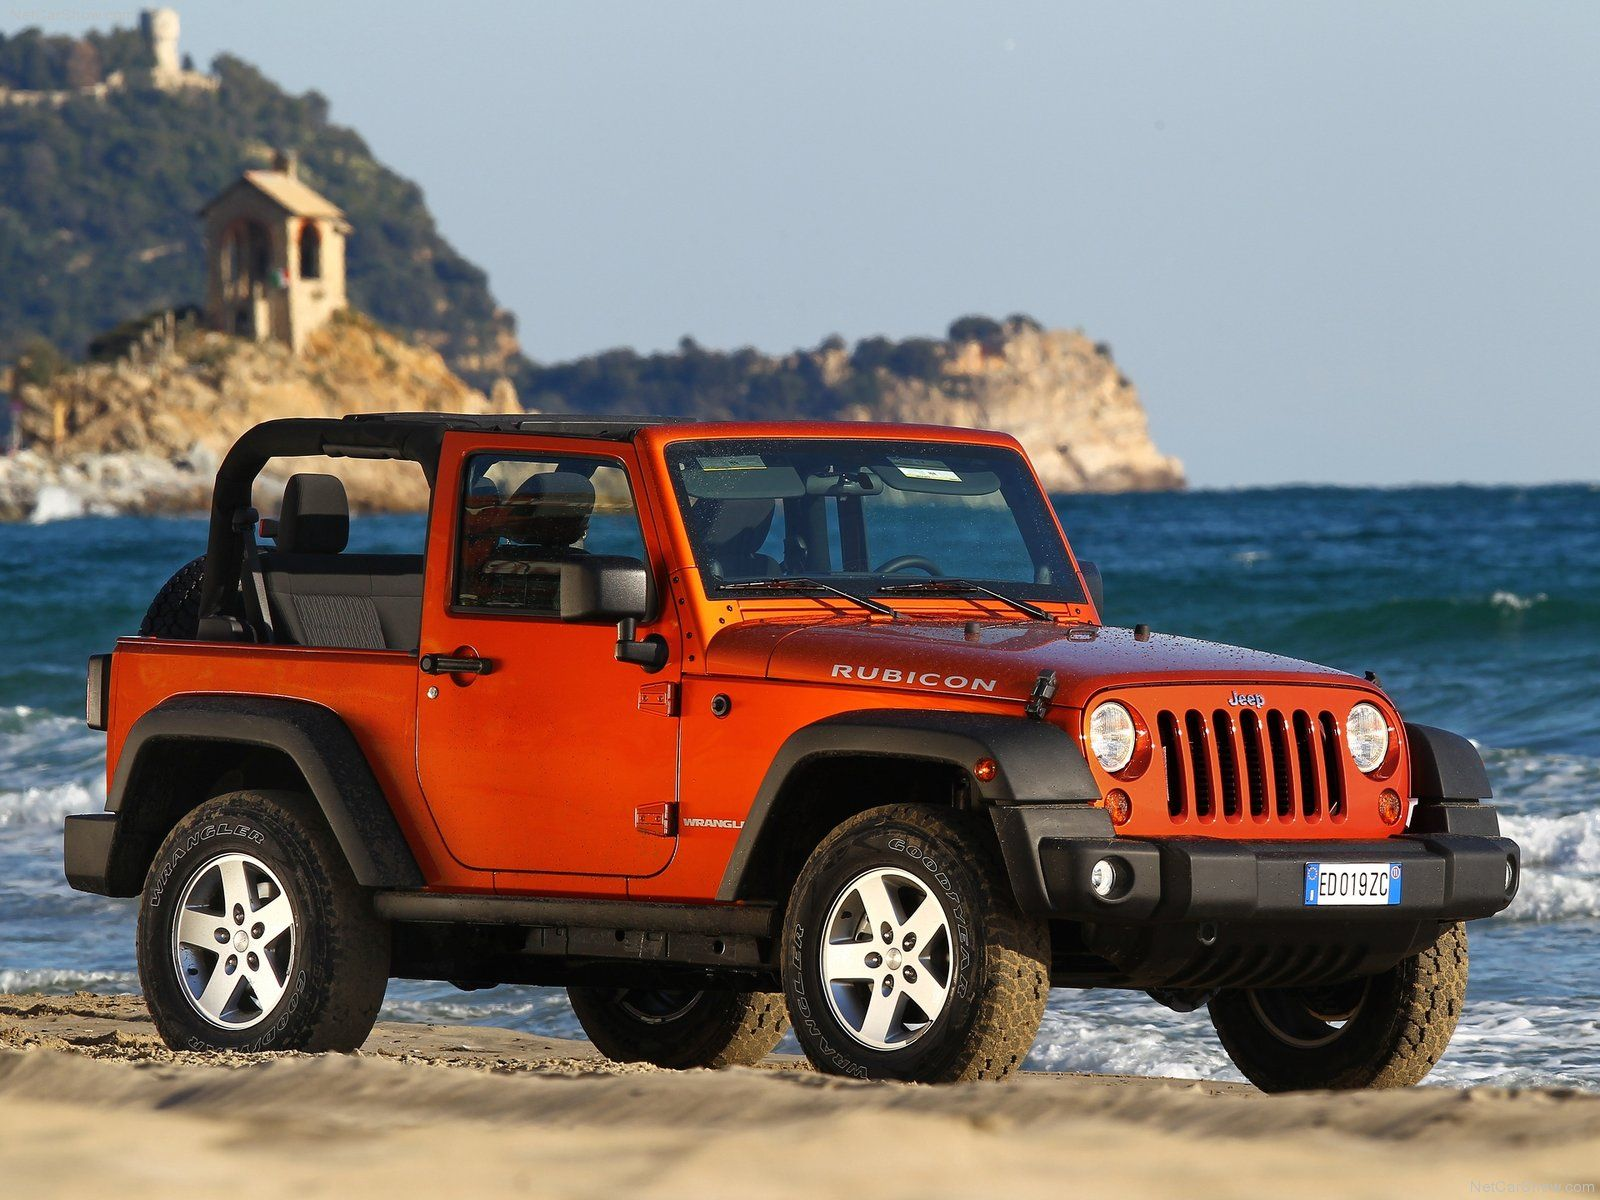 Jeep Wrangler and Sea New app for your Jeep. Jeep